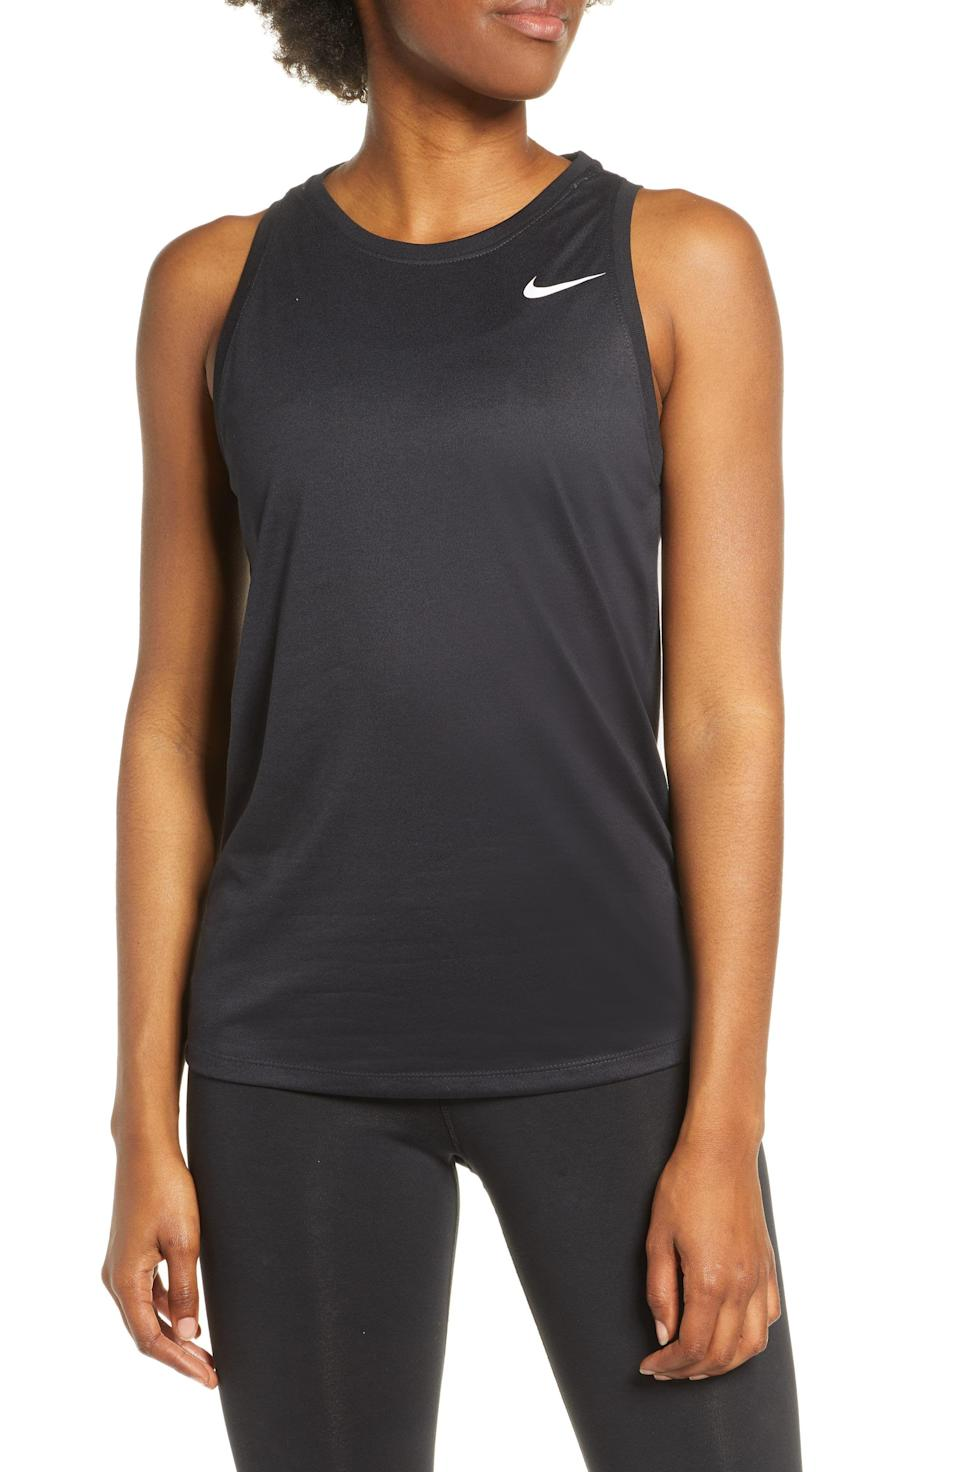 """<p><strong>NIKE</strong></p><p>nordstrom.com</p><p><strong>$18.75</strong></p><p><a href=""""https://go.redirectingat.com?id=74968X1596630&url=https%3A%2F%2Fwww.nordstrom.com%2Fs%2Fnike-legend-dri-fit-training-tank%2F5369402&sref=https%3A%2F%2Fwww.prevention.com%2Ffitness%2Fworkout-clothes-gear%2Fg37542513%2Fworkout-tops-for-women%2F"""" rel=""""nofollow noopener"""" target=""""_blank"""" data-ylk=""""slk:Shop Now"""" class=""""link rapid-noclick-resp"""">Shop Now</a></p><p>This Nike Dri-FIT tank has a flexible material that helps keep you cool and moving naturally from your first stretch well into the afterburn. Its lightweight fabric is <strong>made with 75% recycled polyester fibers and it has an antimicrobial material that prevents odor-causing bacteria</strong>.</p>"""